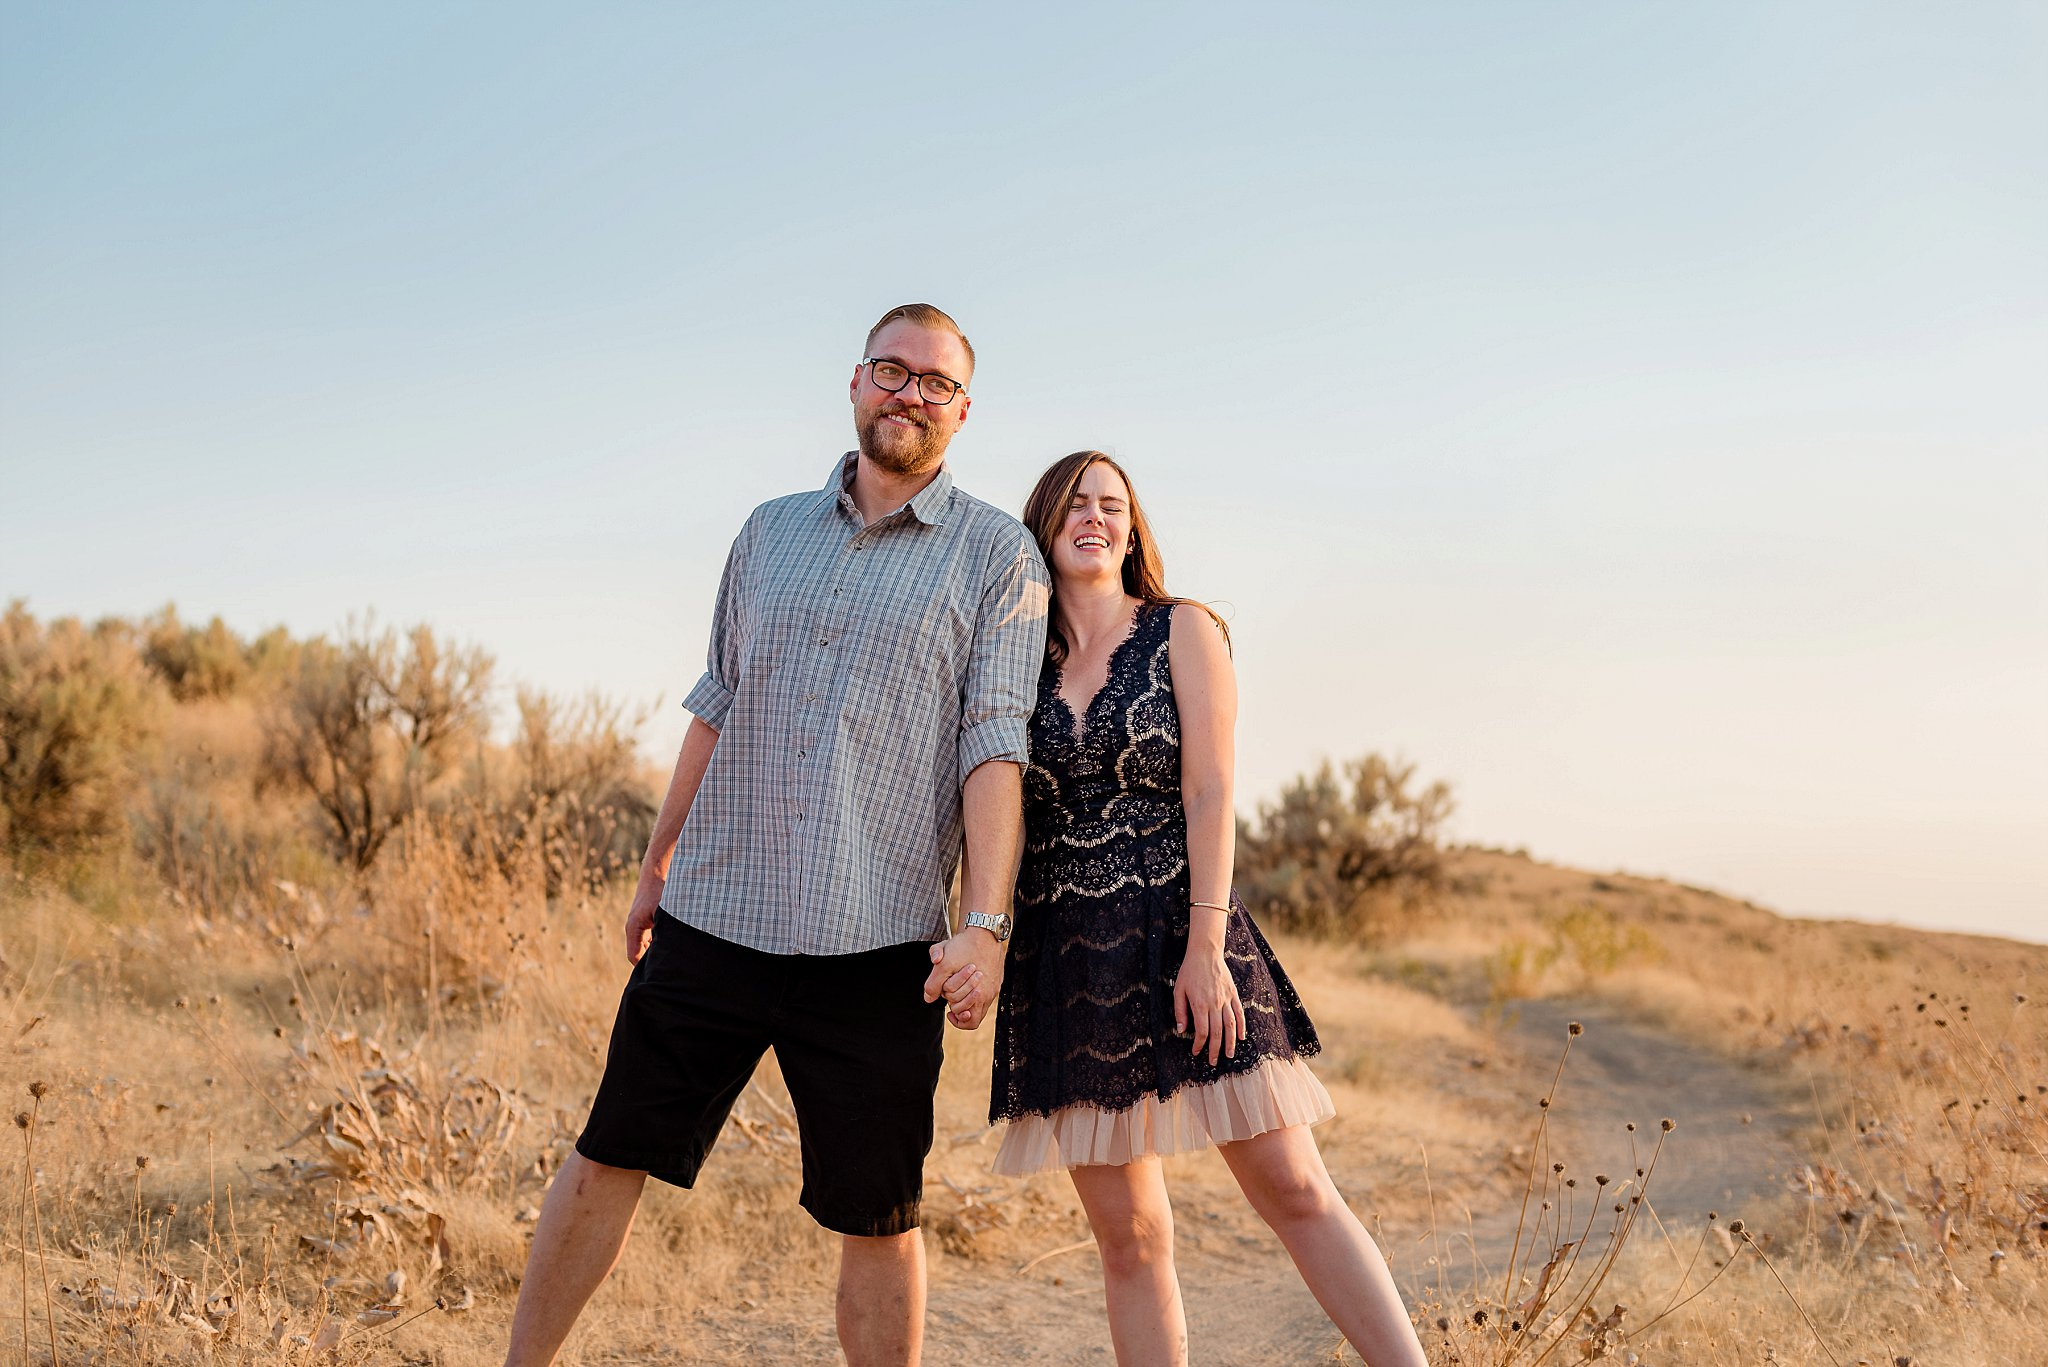 Zilla Photography - Boise Foothills Date Night Couple Session-12_SM.jpg